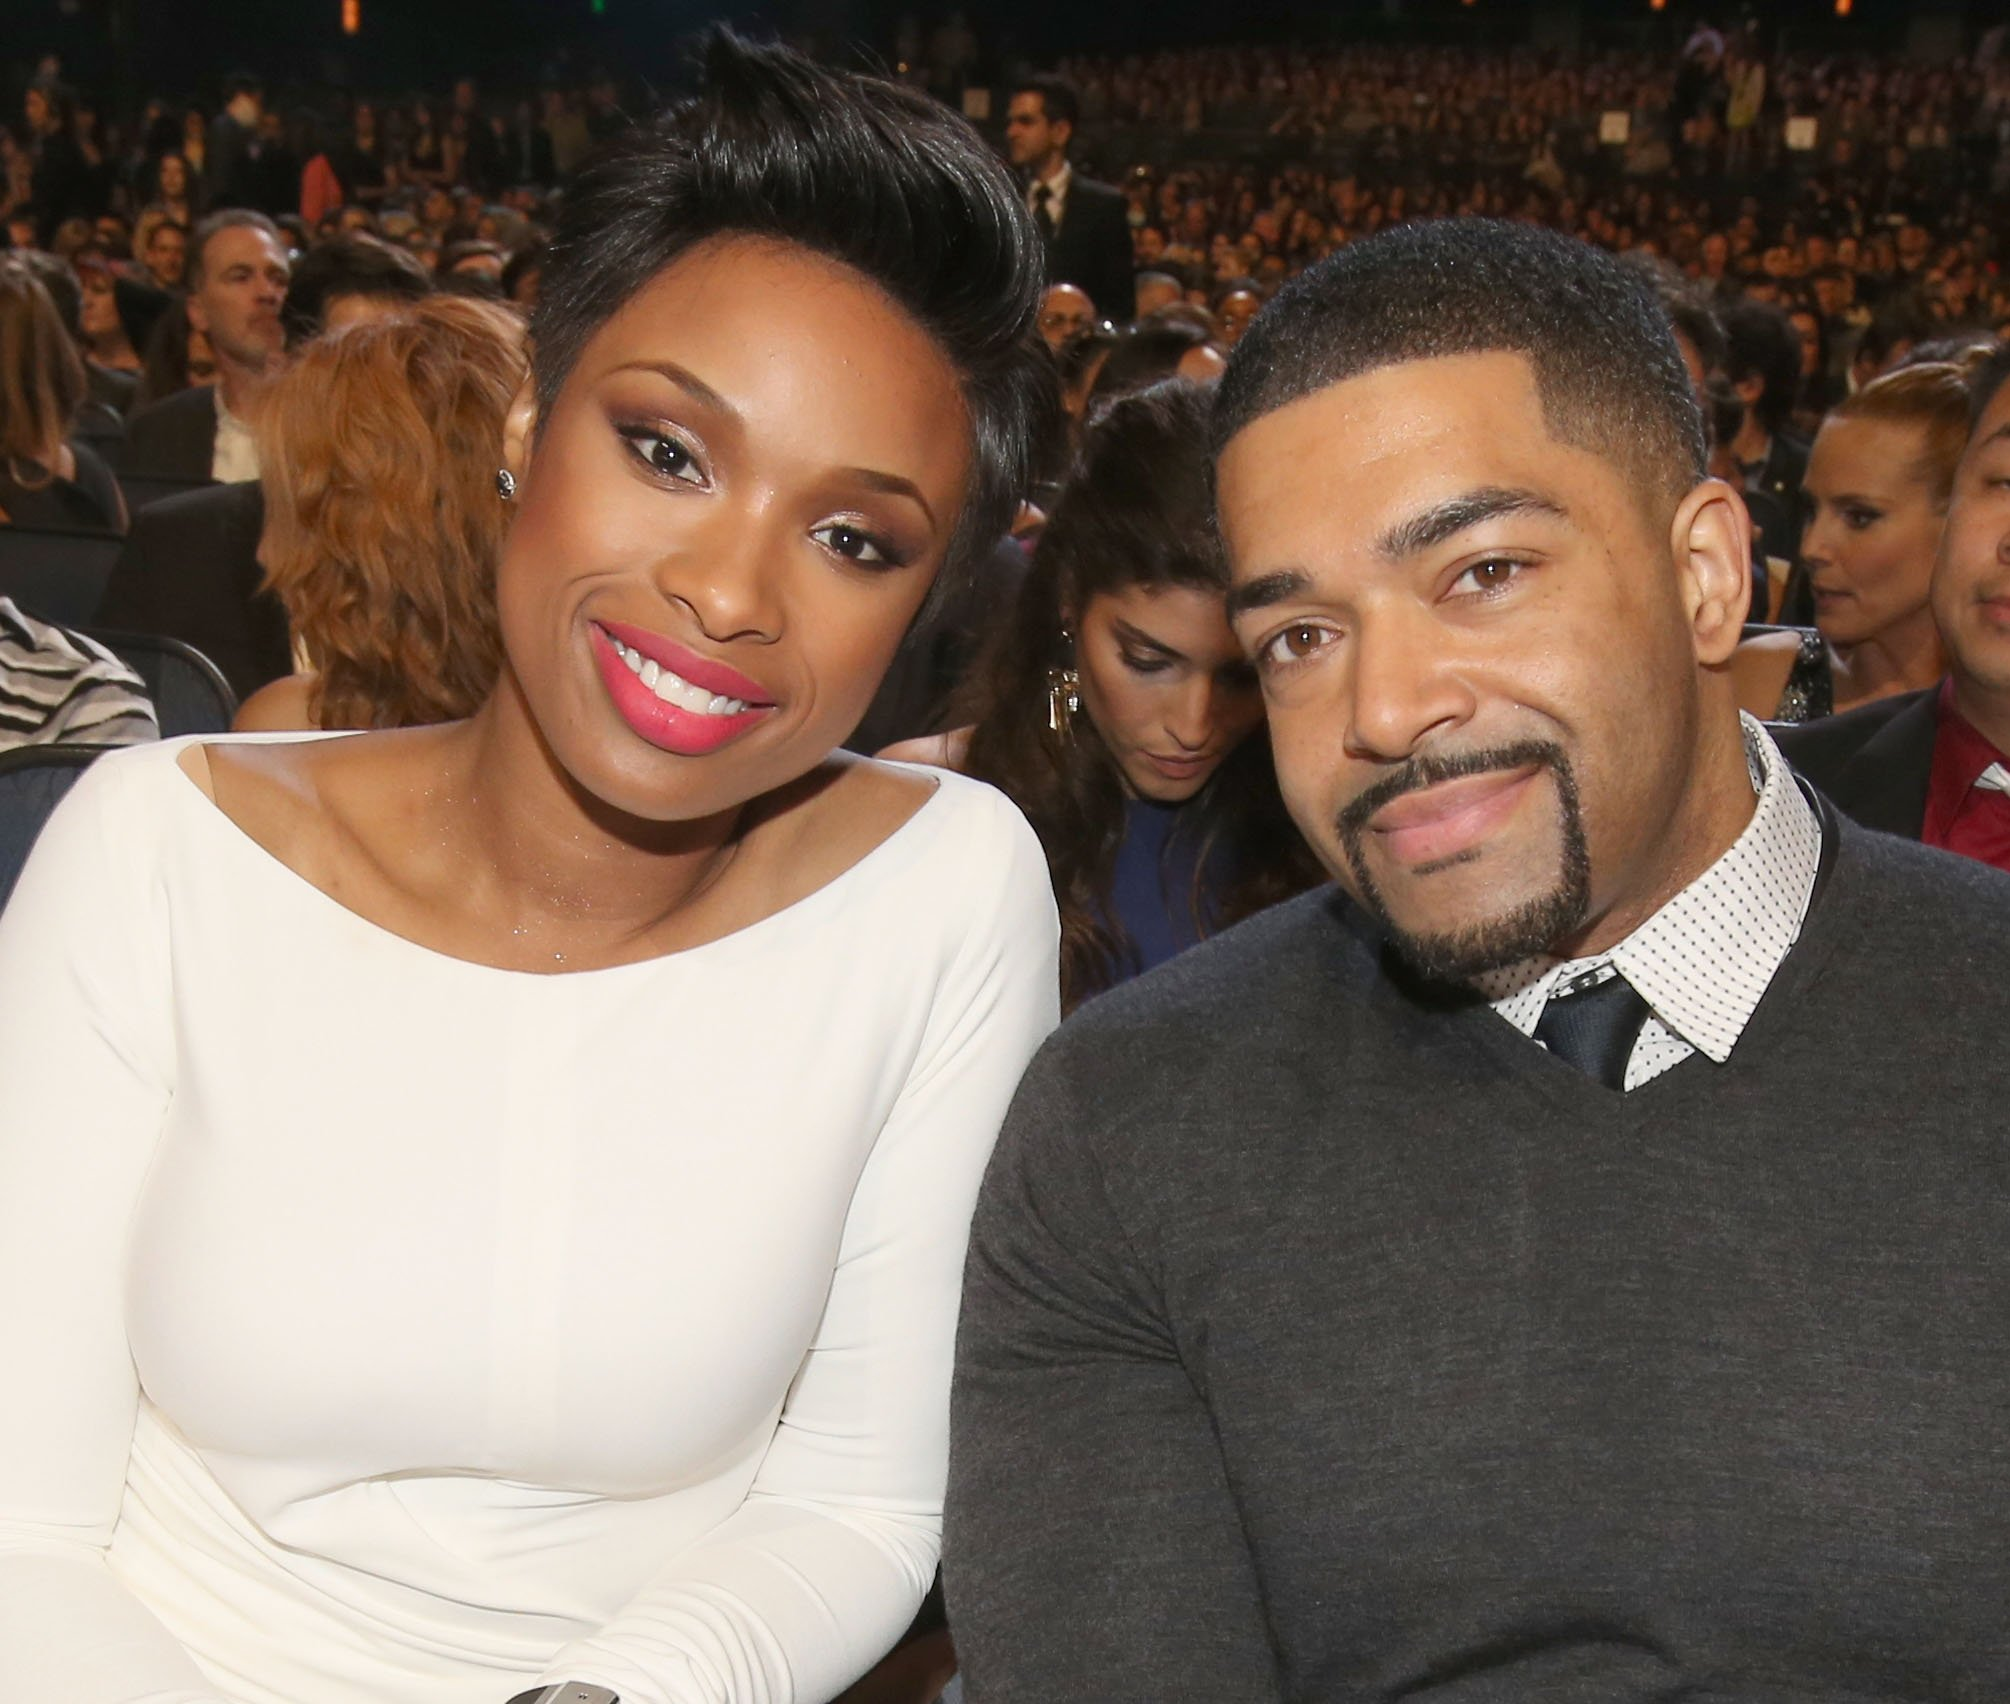 Jennifer Hudson and pro wrestler/actor David Otunga attend The 40th Annual People's Choice Awards at Nokia Theatre L.A. Live on January 8, 2014. | Photo: Getty Images